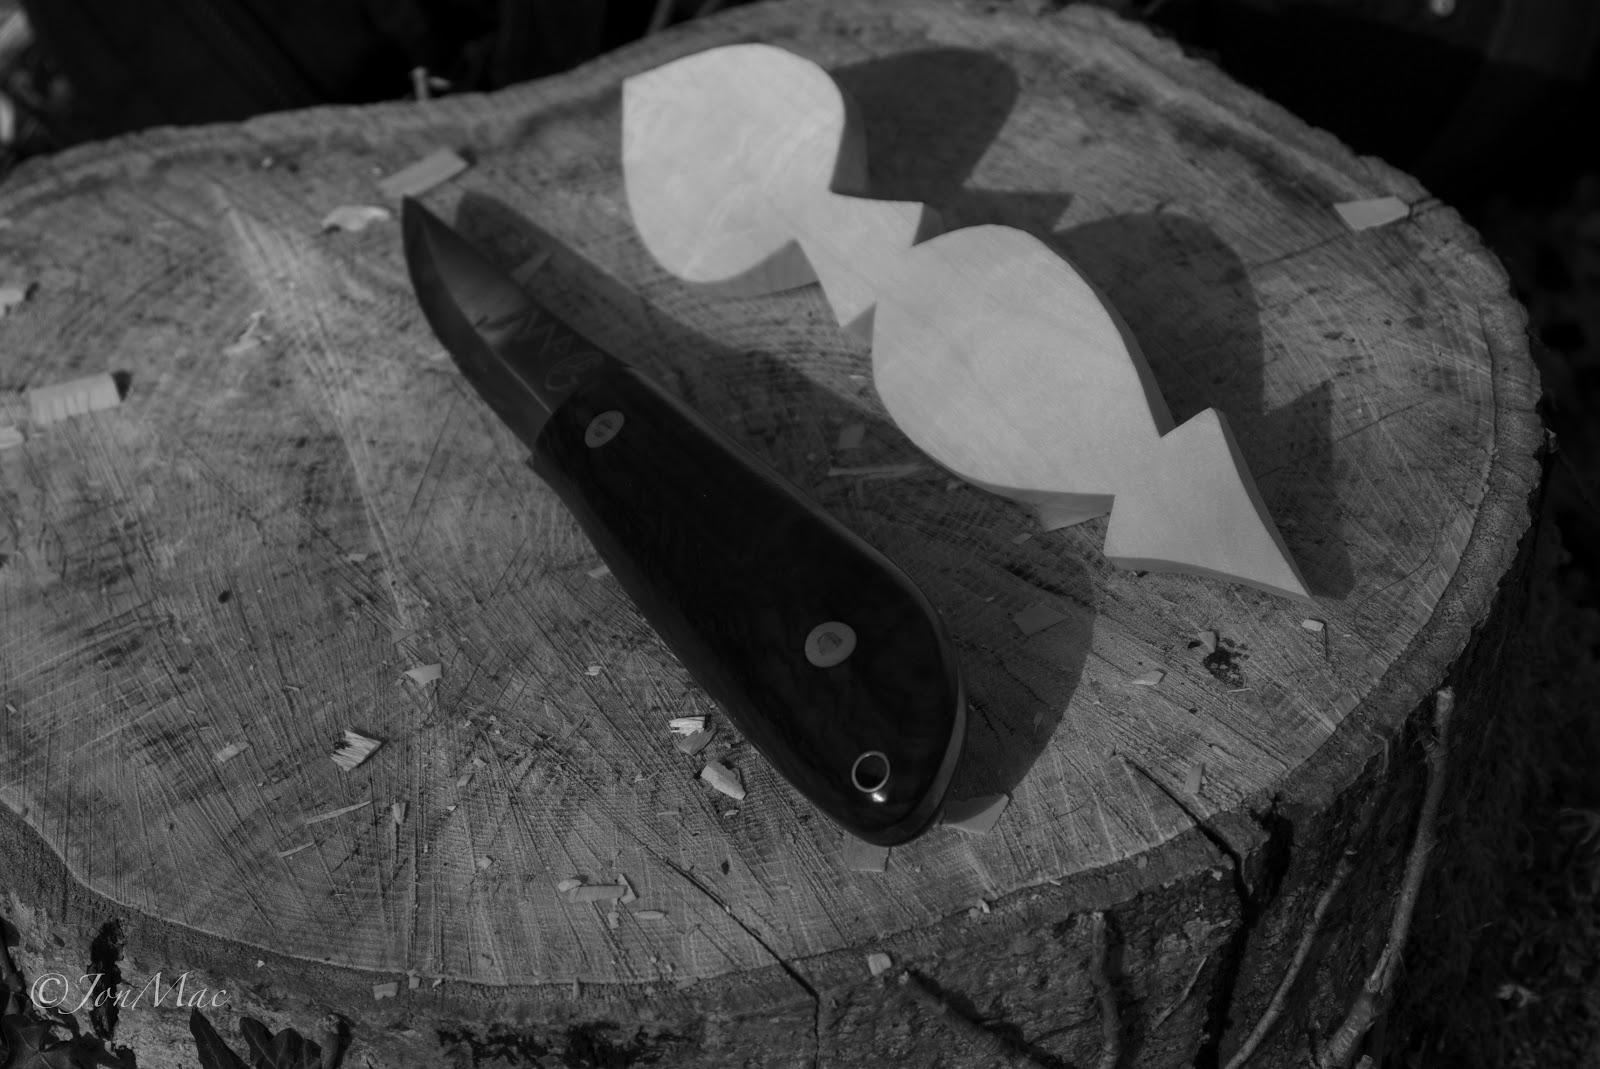 Bushcraft knife+MaChris bush craft knife+spoon carving blank